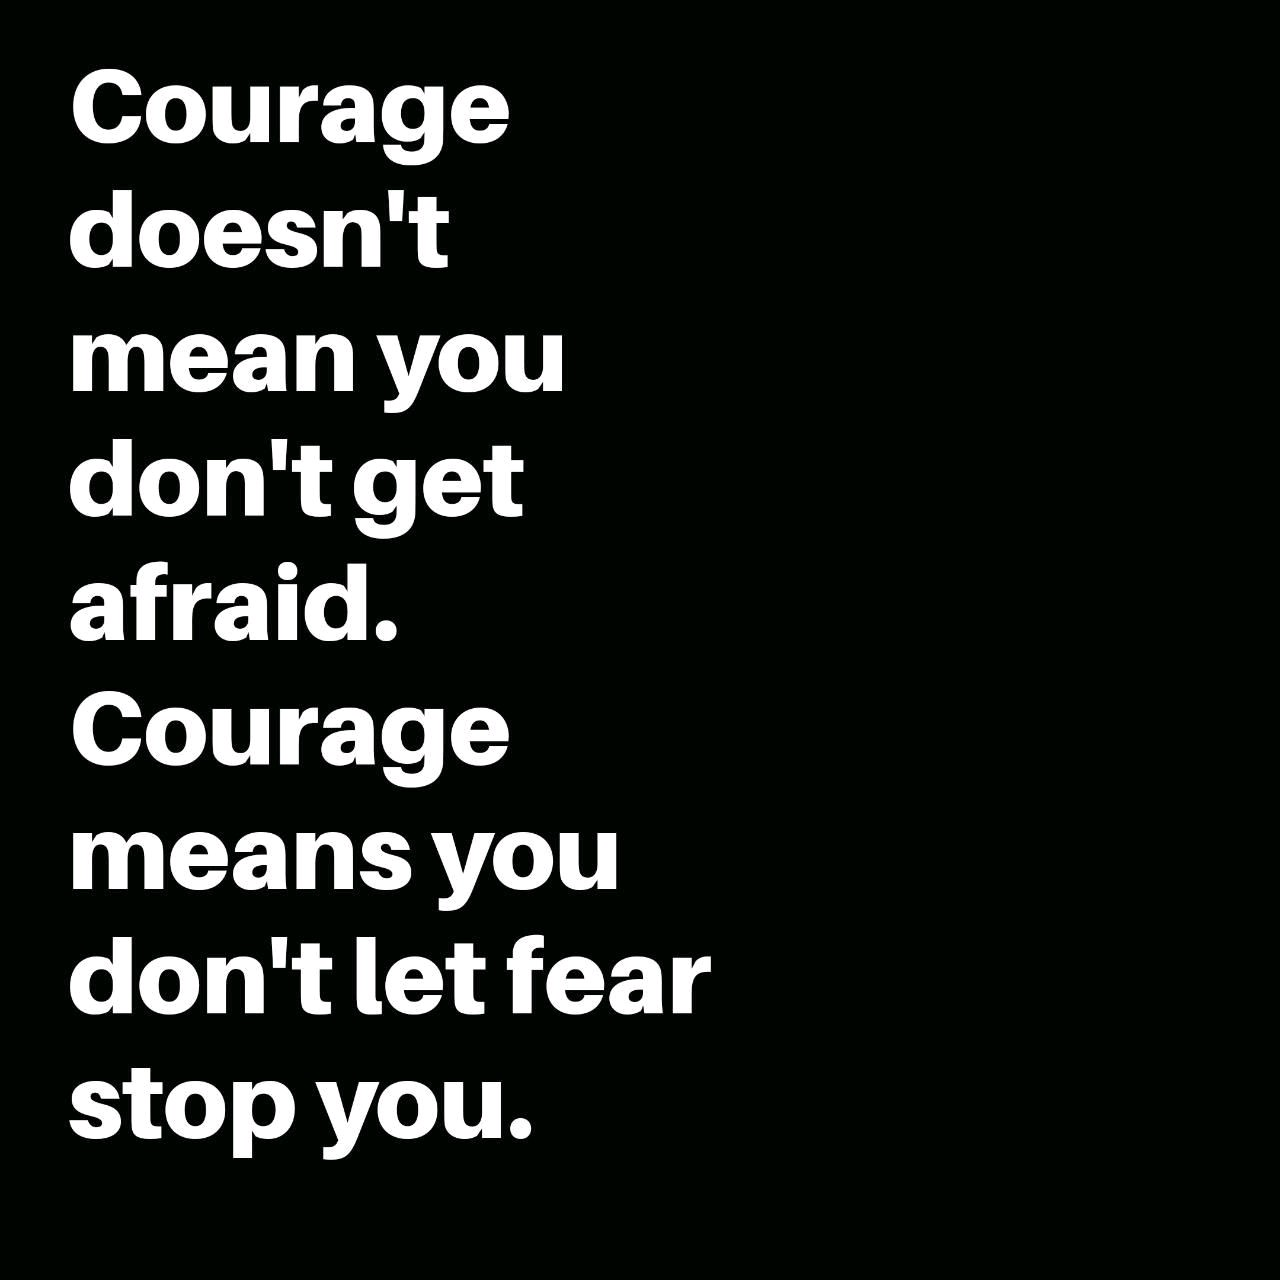 [Image] Change is scary, embrace it with courage